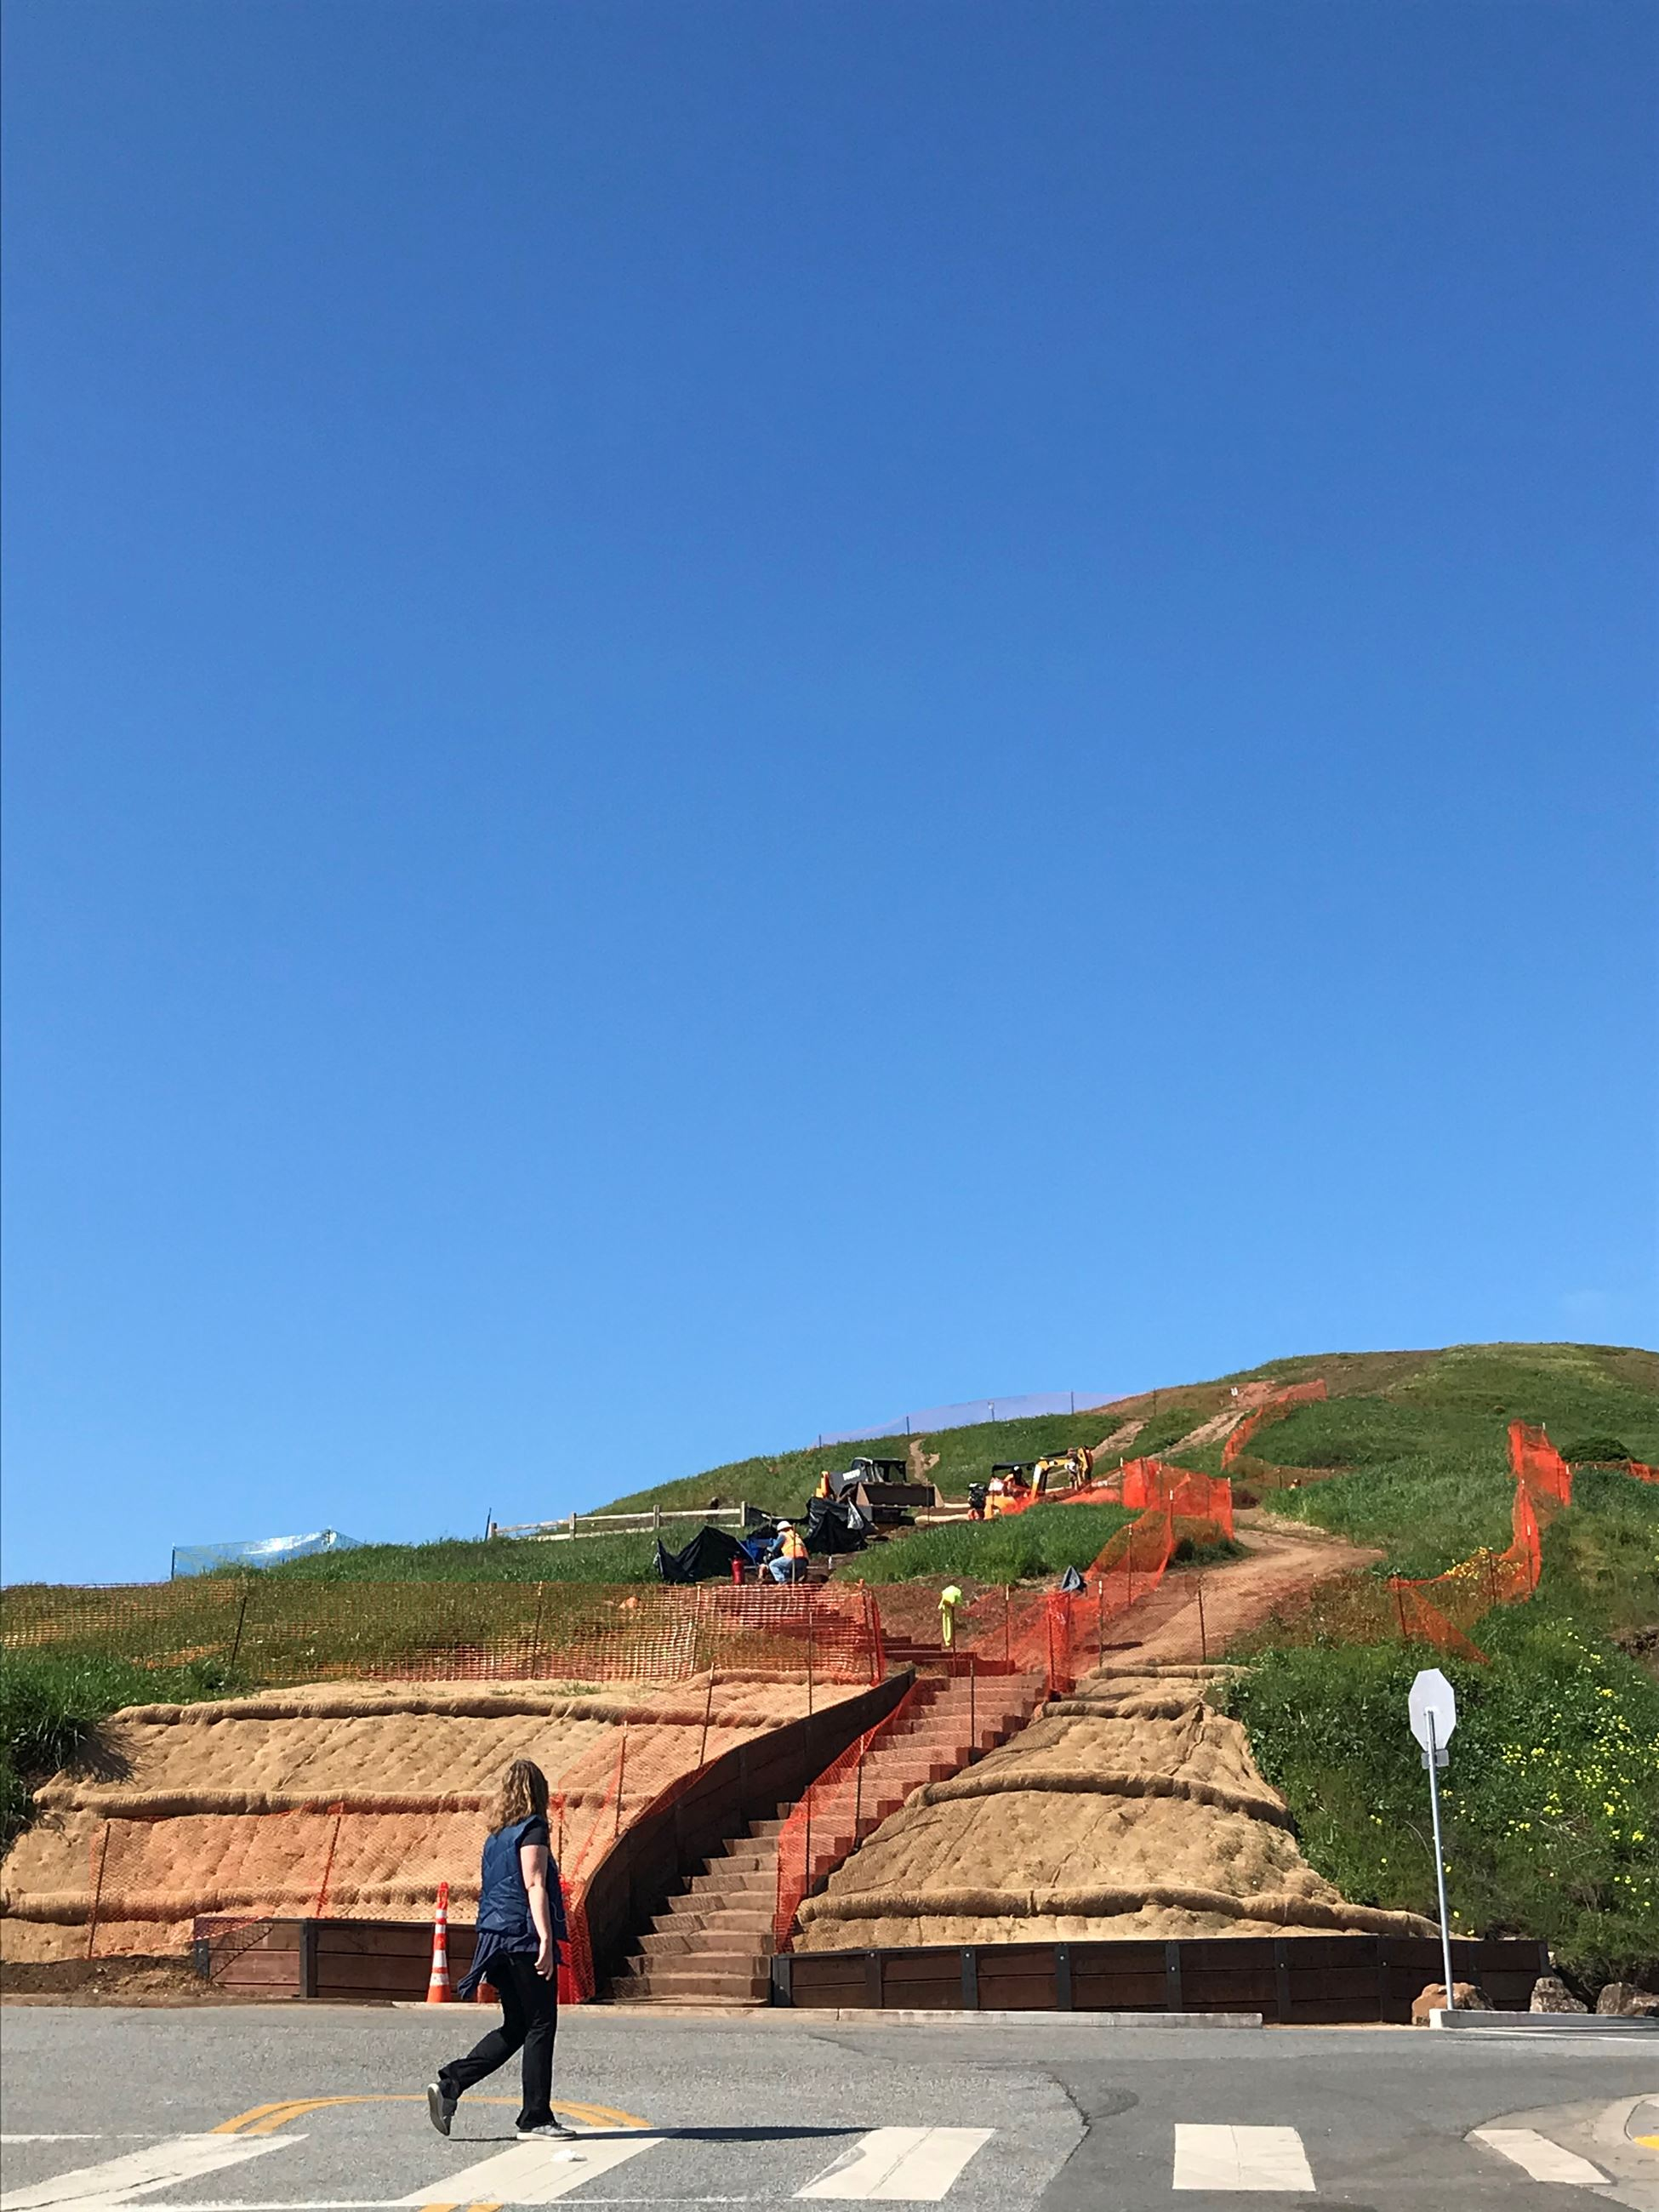 View of Box Steps Up Bernal Hill in construction with orange construction fencing, crosswalk (person